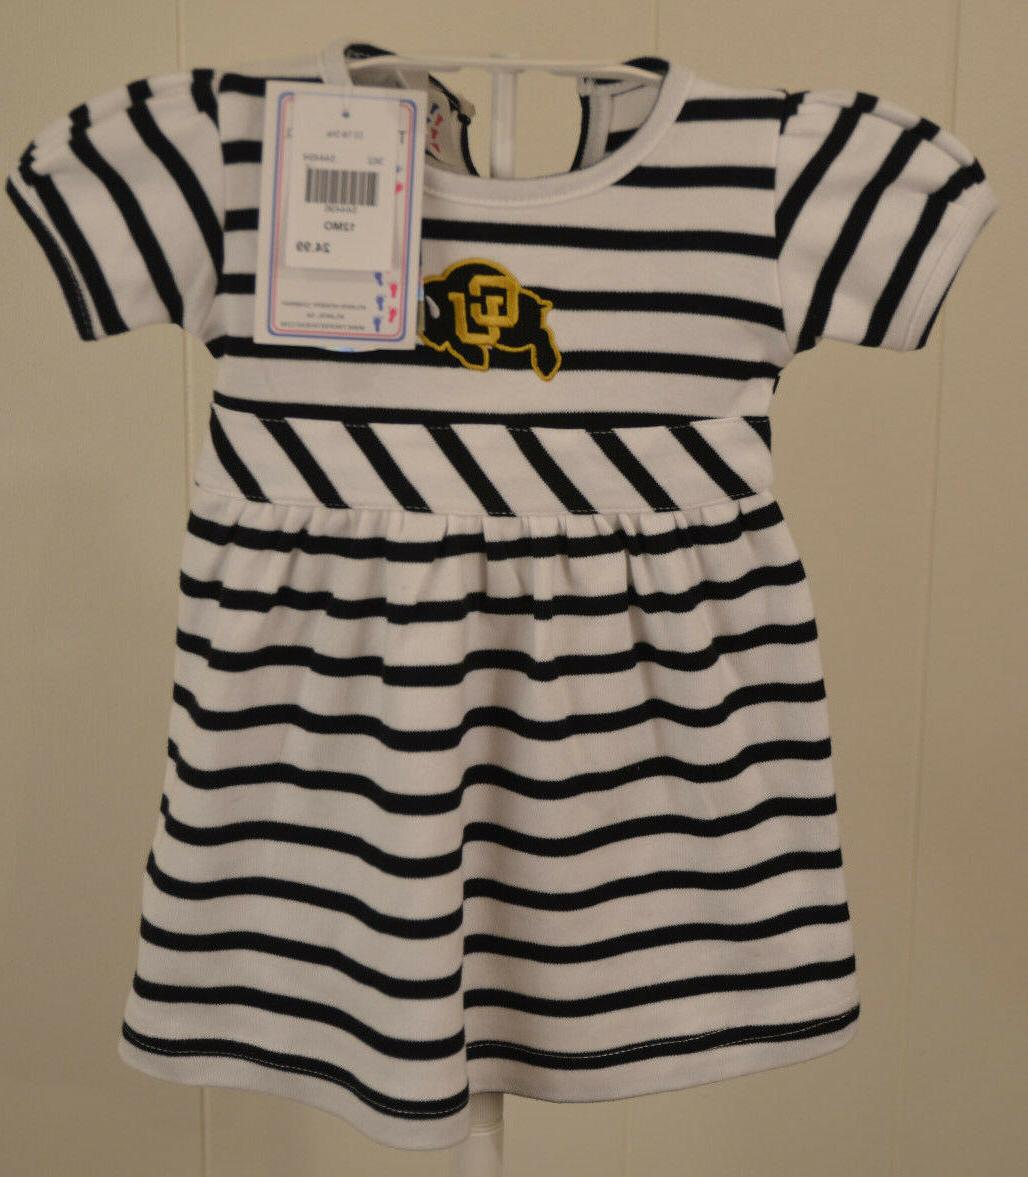 New Colorado University CU Buffaloes Dress Infant 12 months